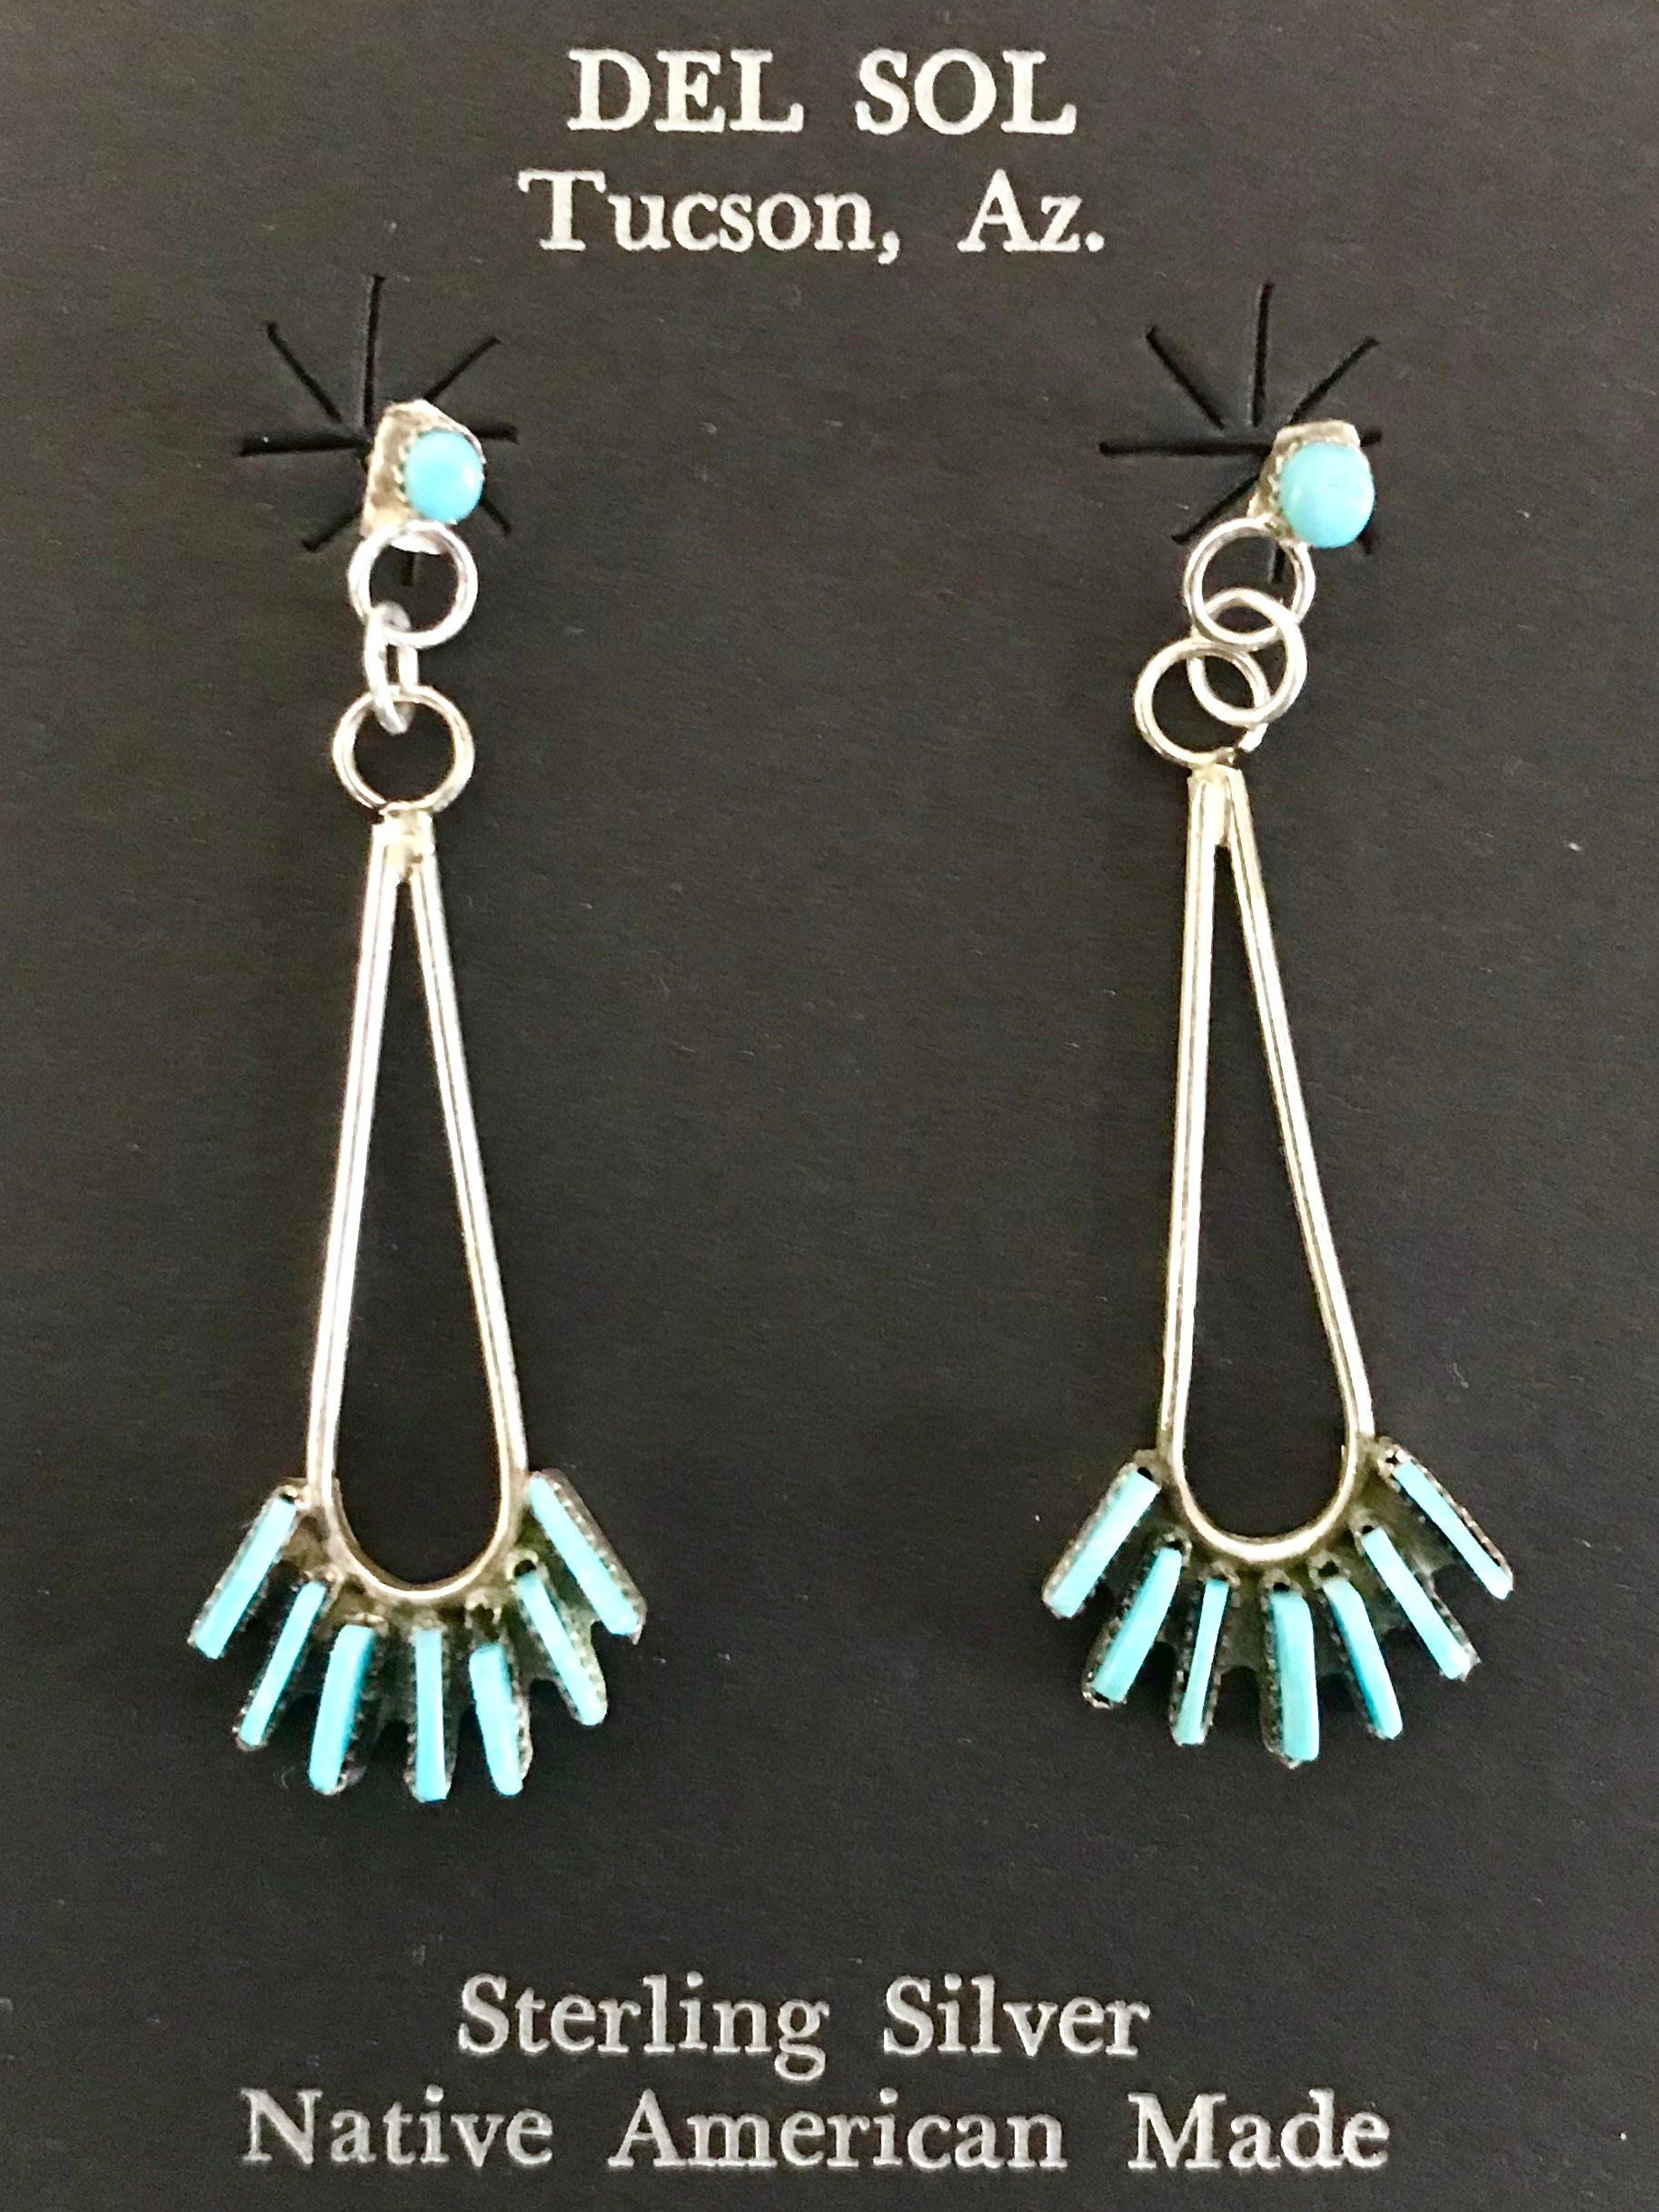 Zuni, Native American handcrafted, sterling silver, genuine stone earrings, made in New Mexico, USA.